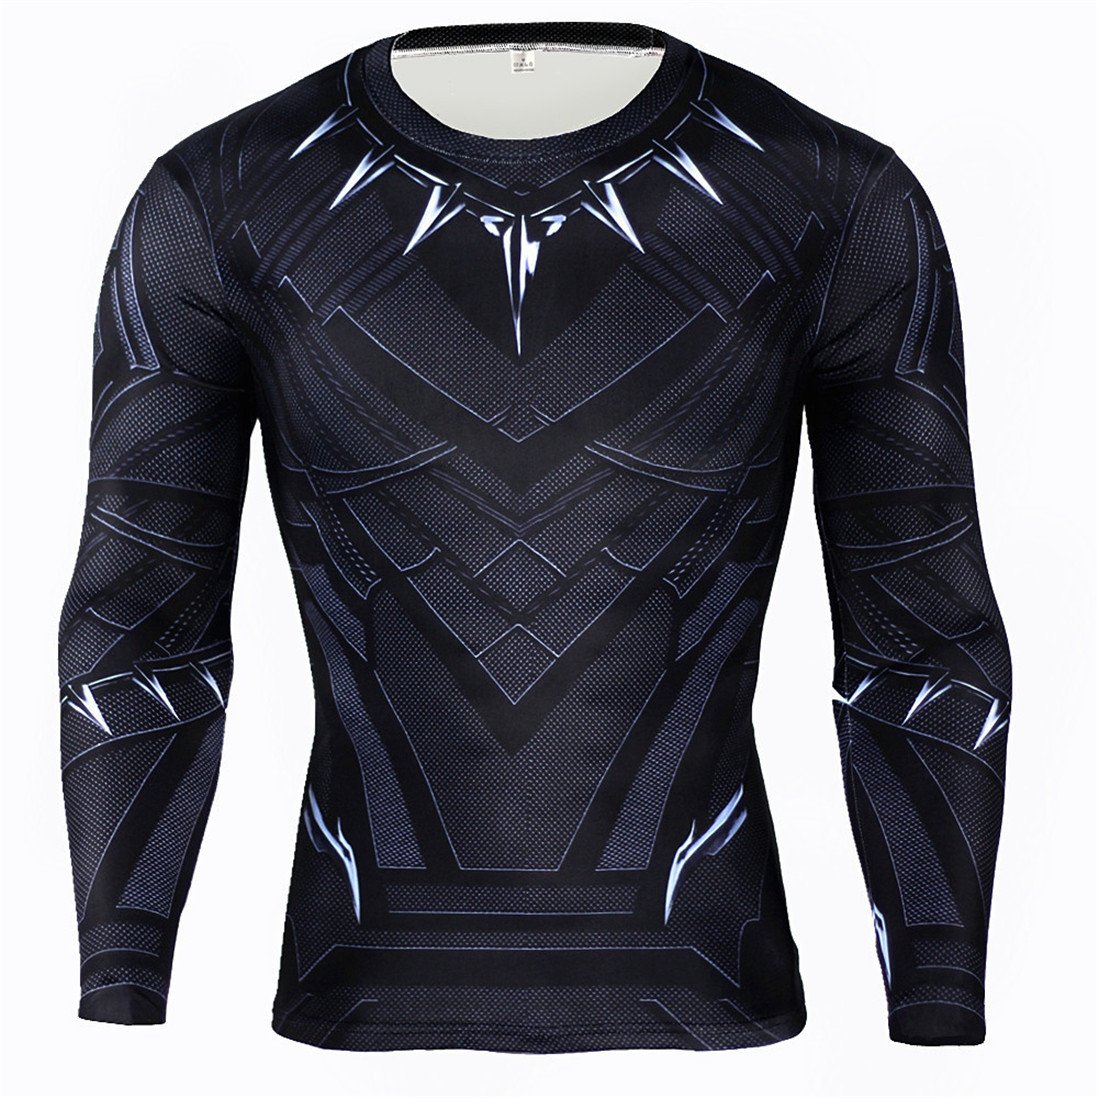 HIMIC E77C Hot Movie Super Hero Quick-Drying ElasticT-Shirt Costume (Medium, Black Panther Long Sleeve)